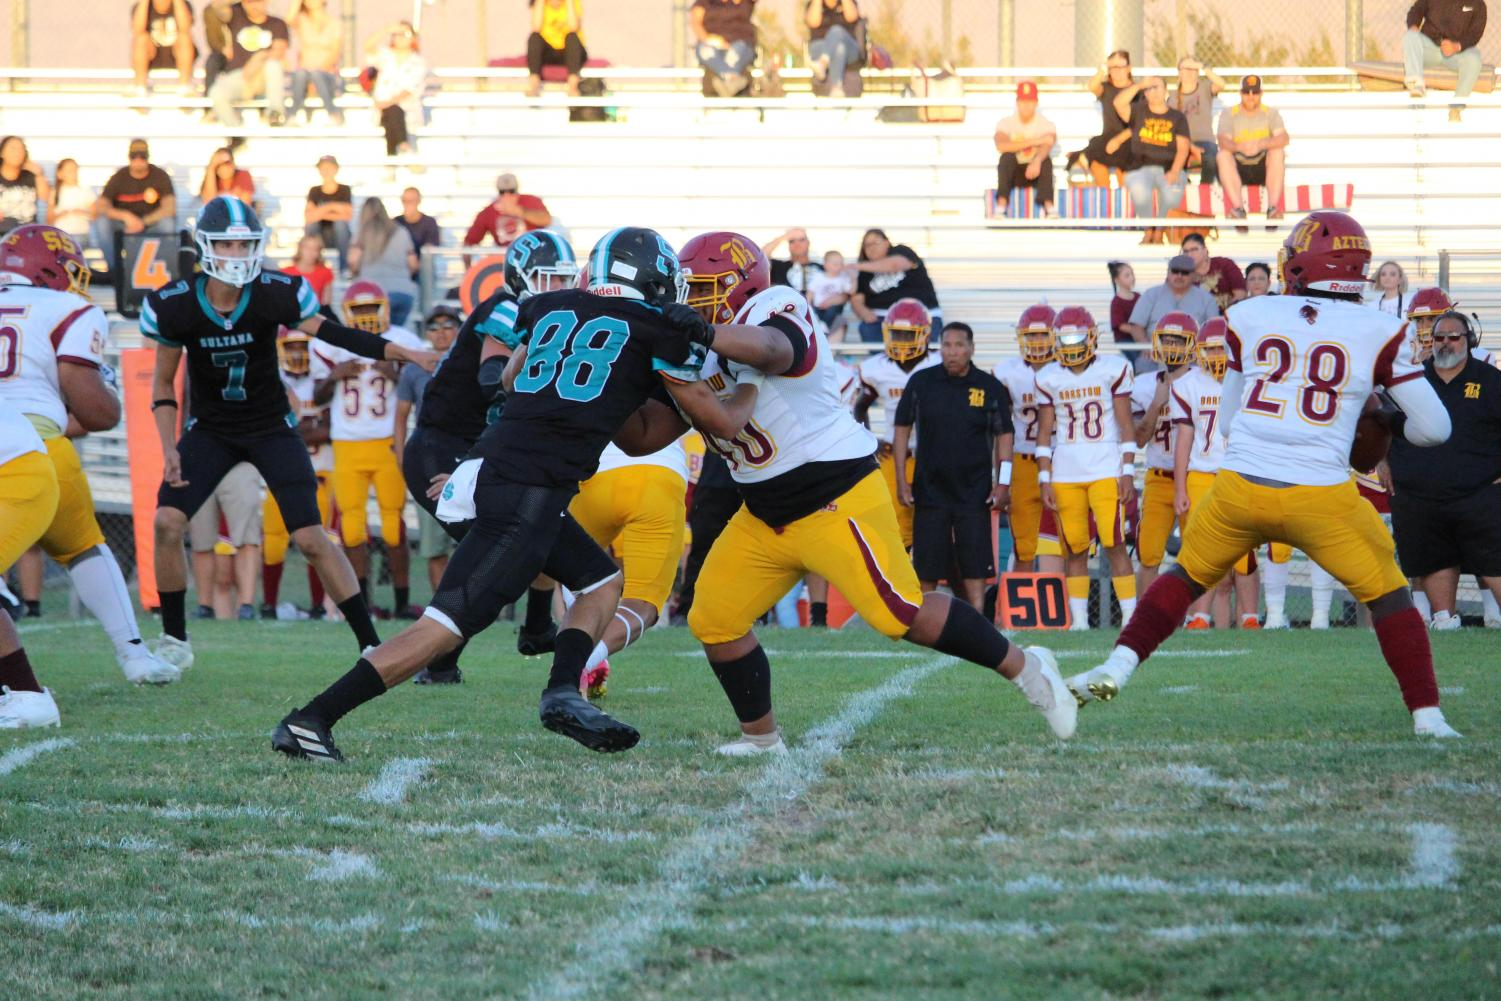 Defensive end, Andre Ruiz, works against the offensive line.